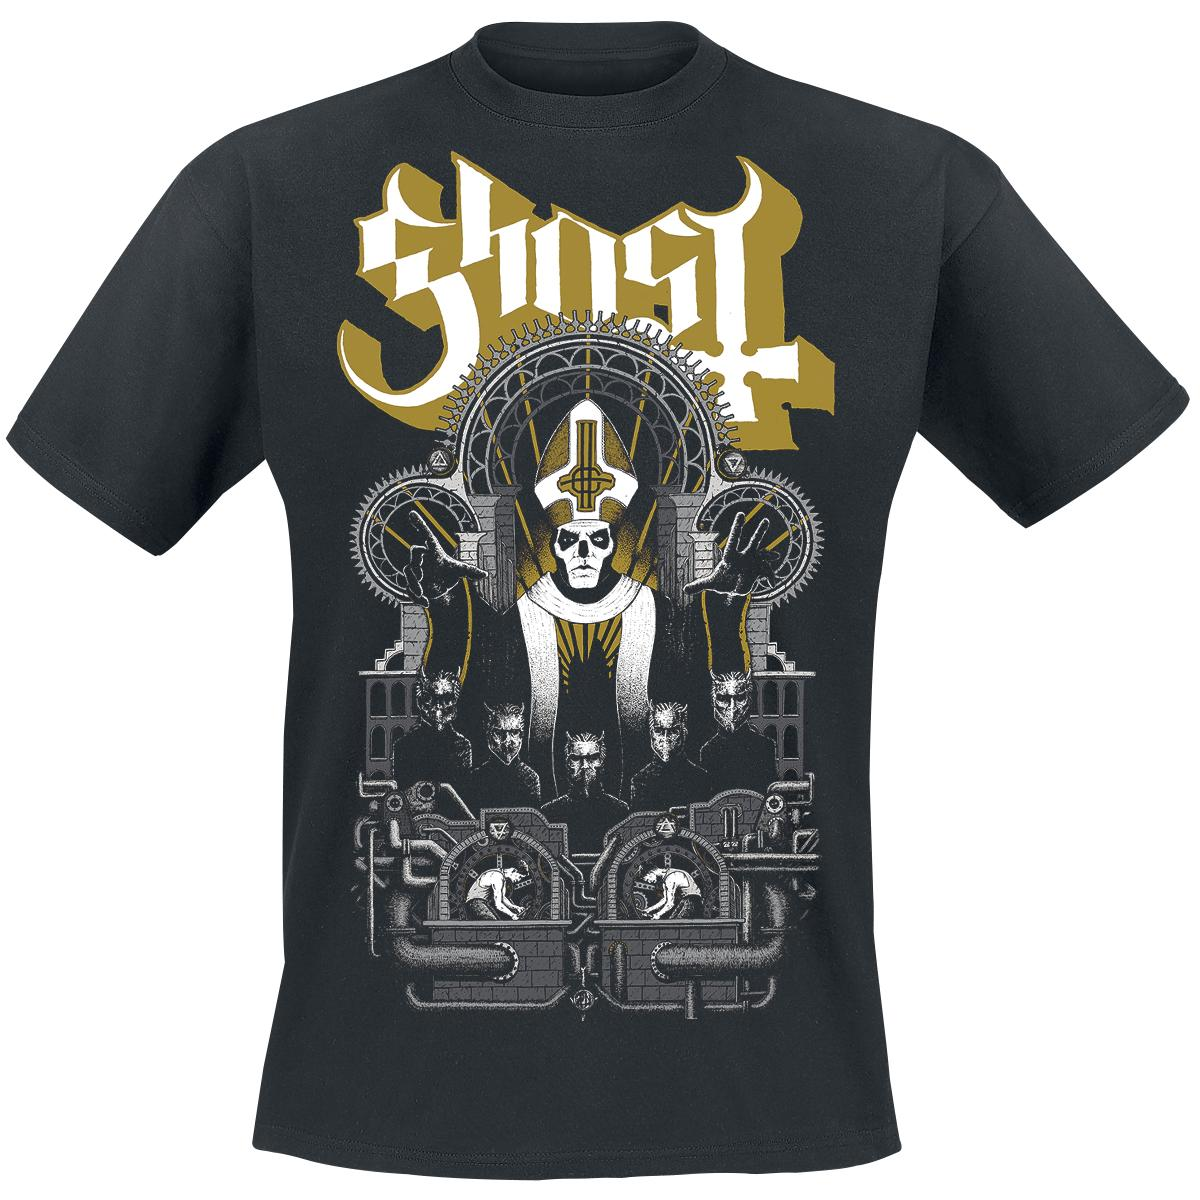 05-ghost-papa-emeritus-t-shirt